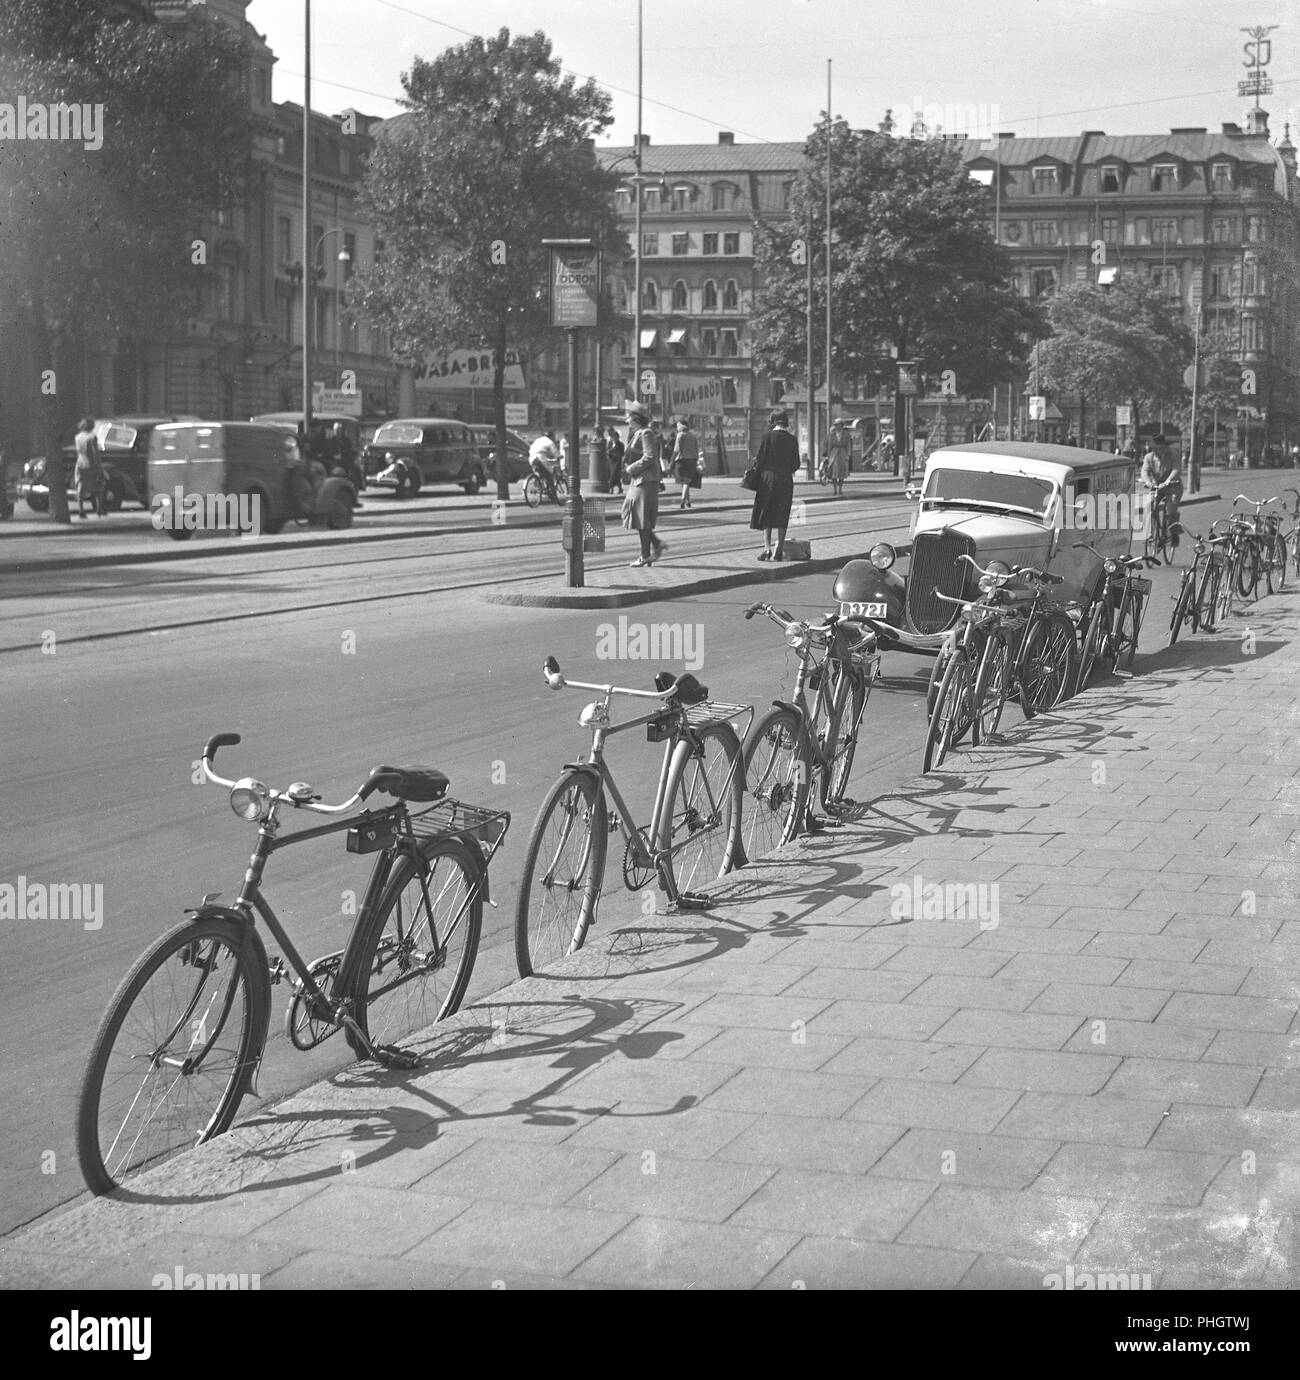 1940s cyclists. Bicycles are parked against the sidewalk in a busy street in Stockholm city. The stand for parking the bicycle without leaning it to something, looks as if it is not yet an item mounted on the bicycles. The bicycles are all leaning agains the kerb of the sidewalk.  May 1940.  Photo Kristoffersson 129-9 - Stock Image